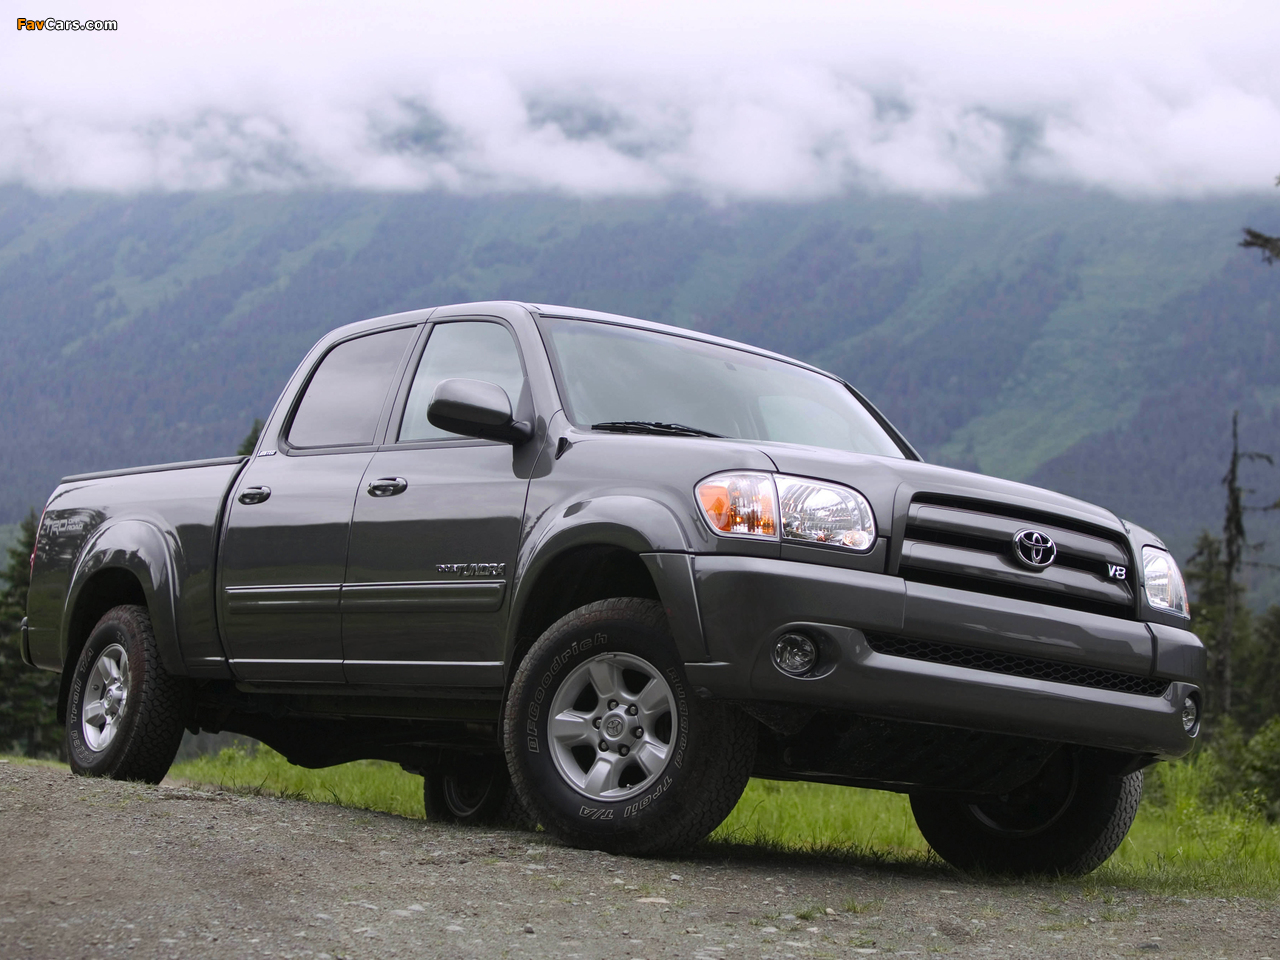 trd toyota tundra double cab limited off road edition 2003 06 wallpapers 1280x960. Black Bedroom Furniture Sets. Home Design Ideas